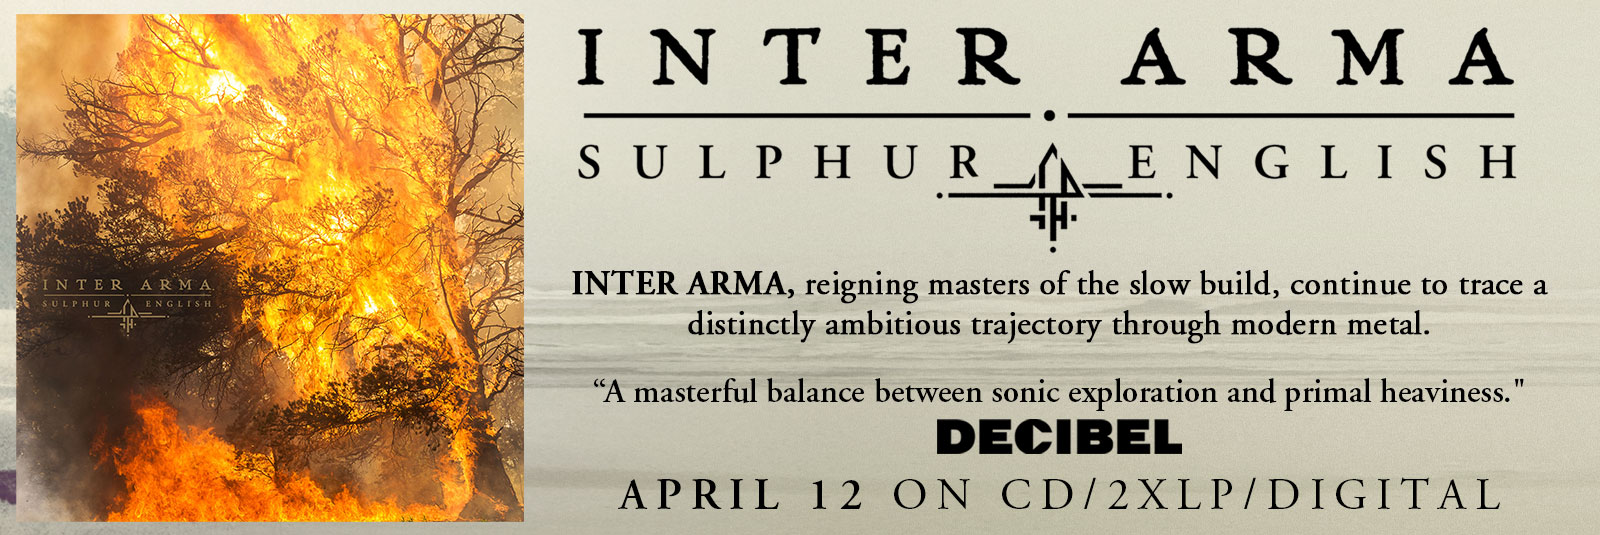 inter-arma-sulphur-english-doom-metal-april-12